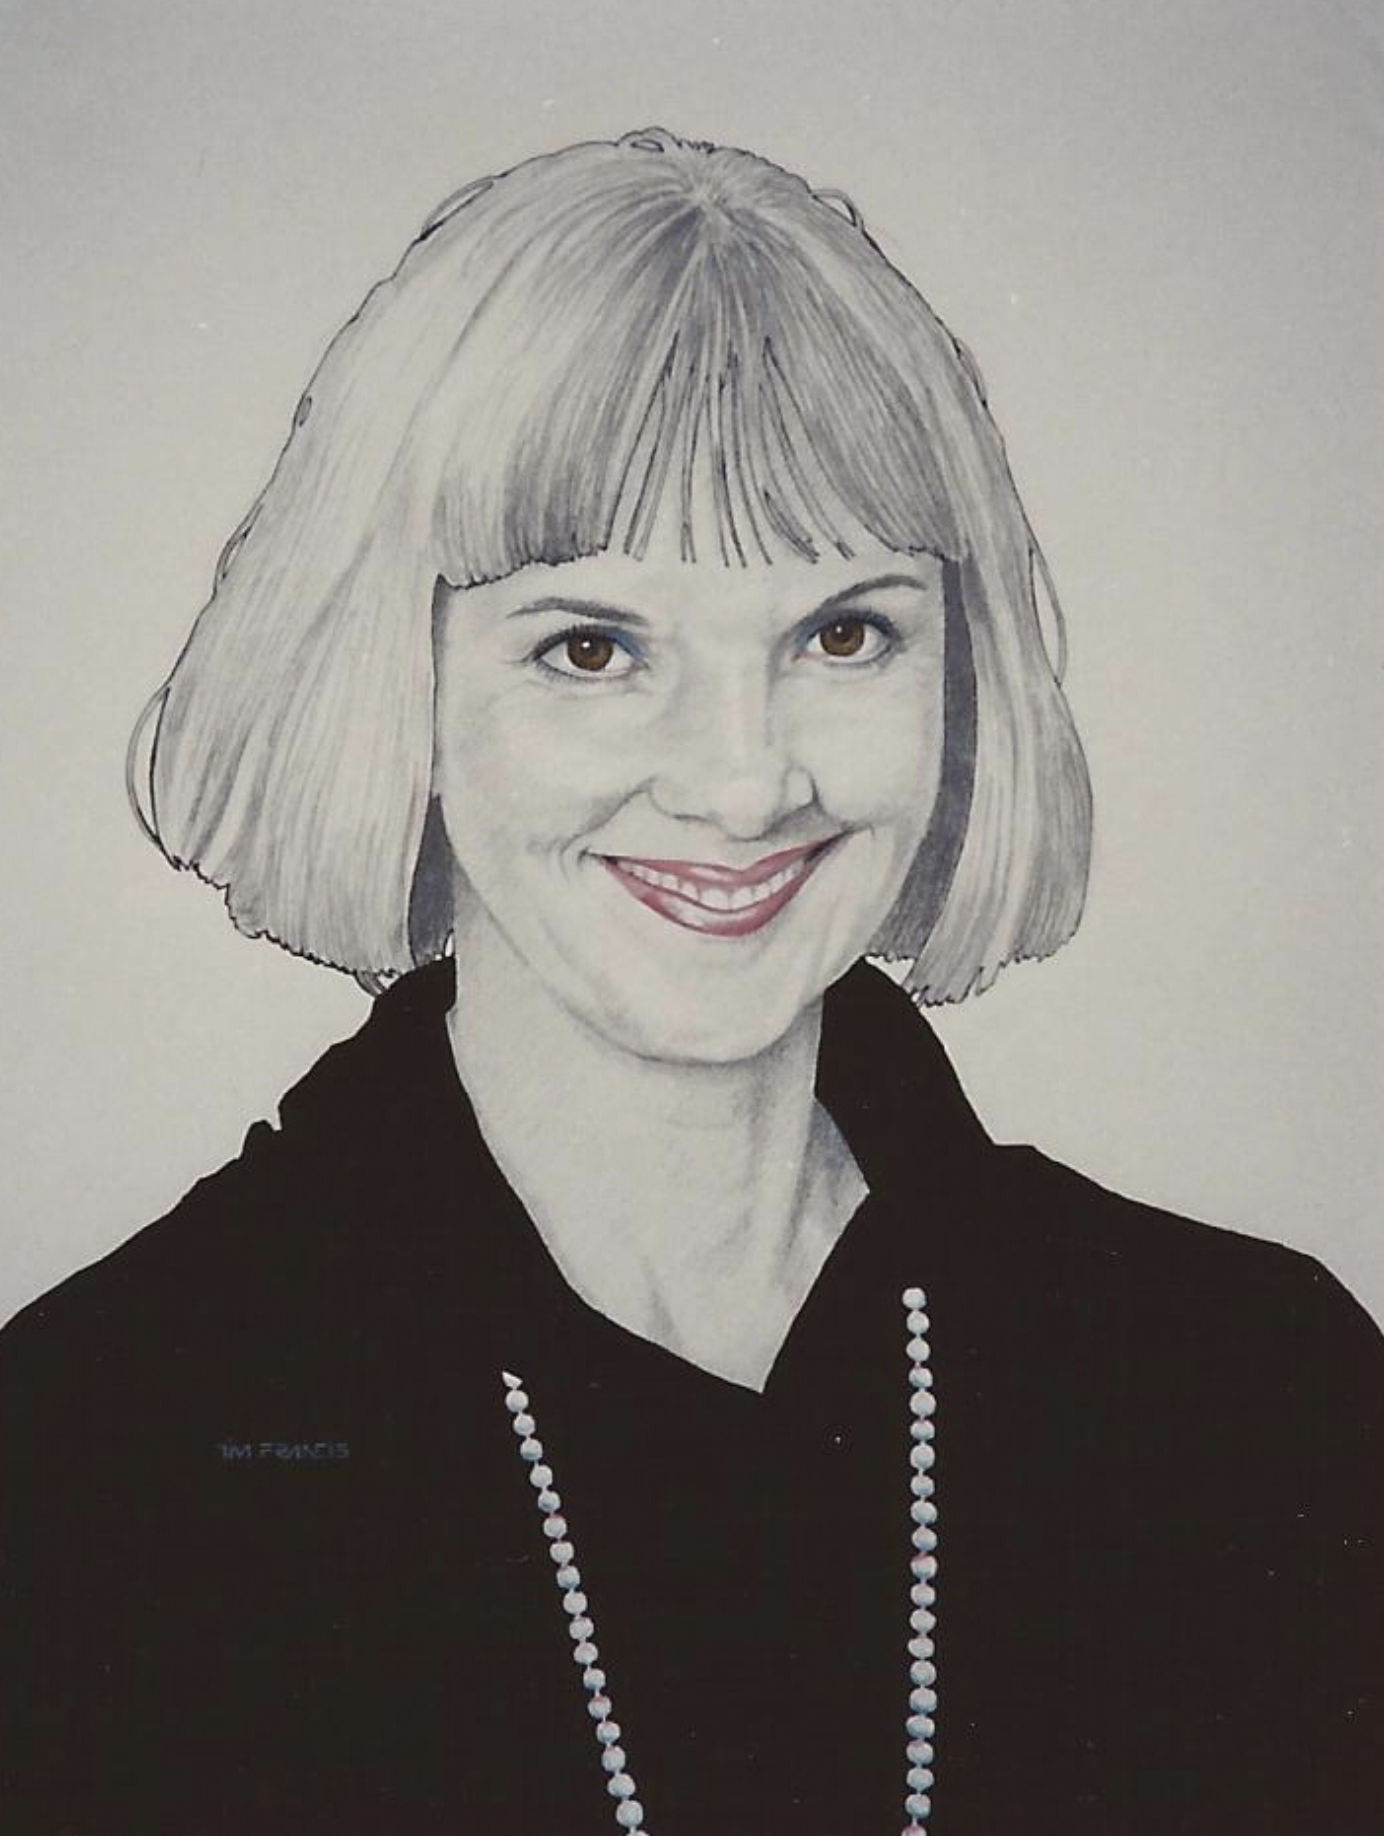 mary - 1989, Pencil and acrylic on illustration board. Private collection, Vancouver, BC